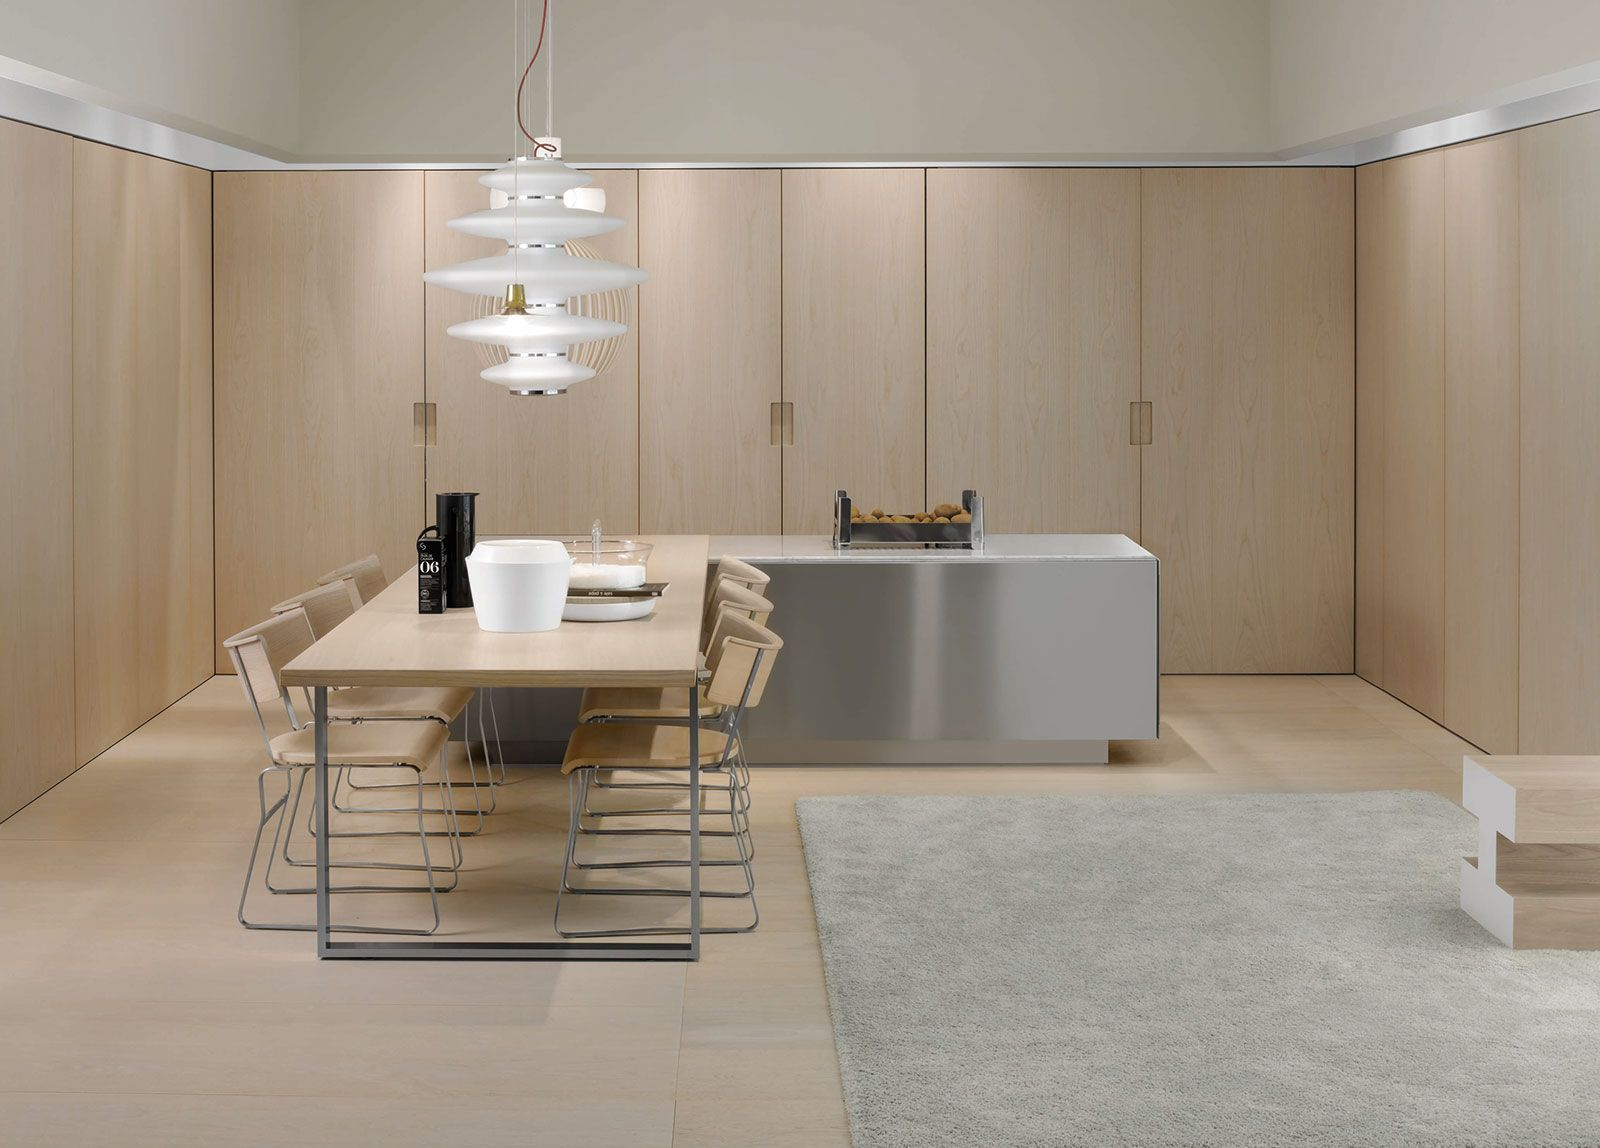 Spatia Arclinea Modern Kitchen Design Contemporary Kitchen Design Italian Kitchen Design